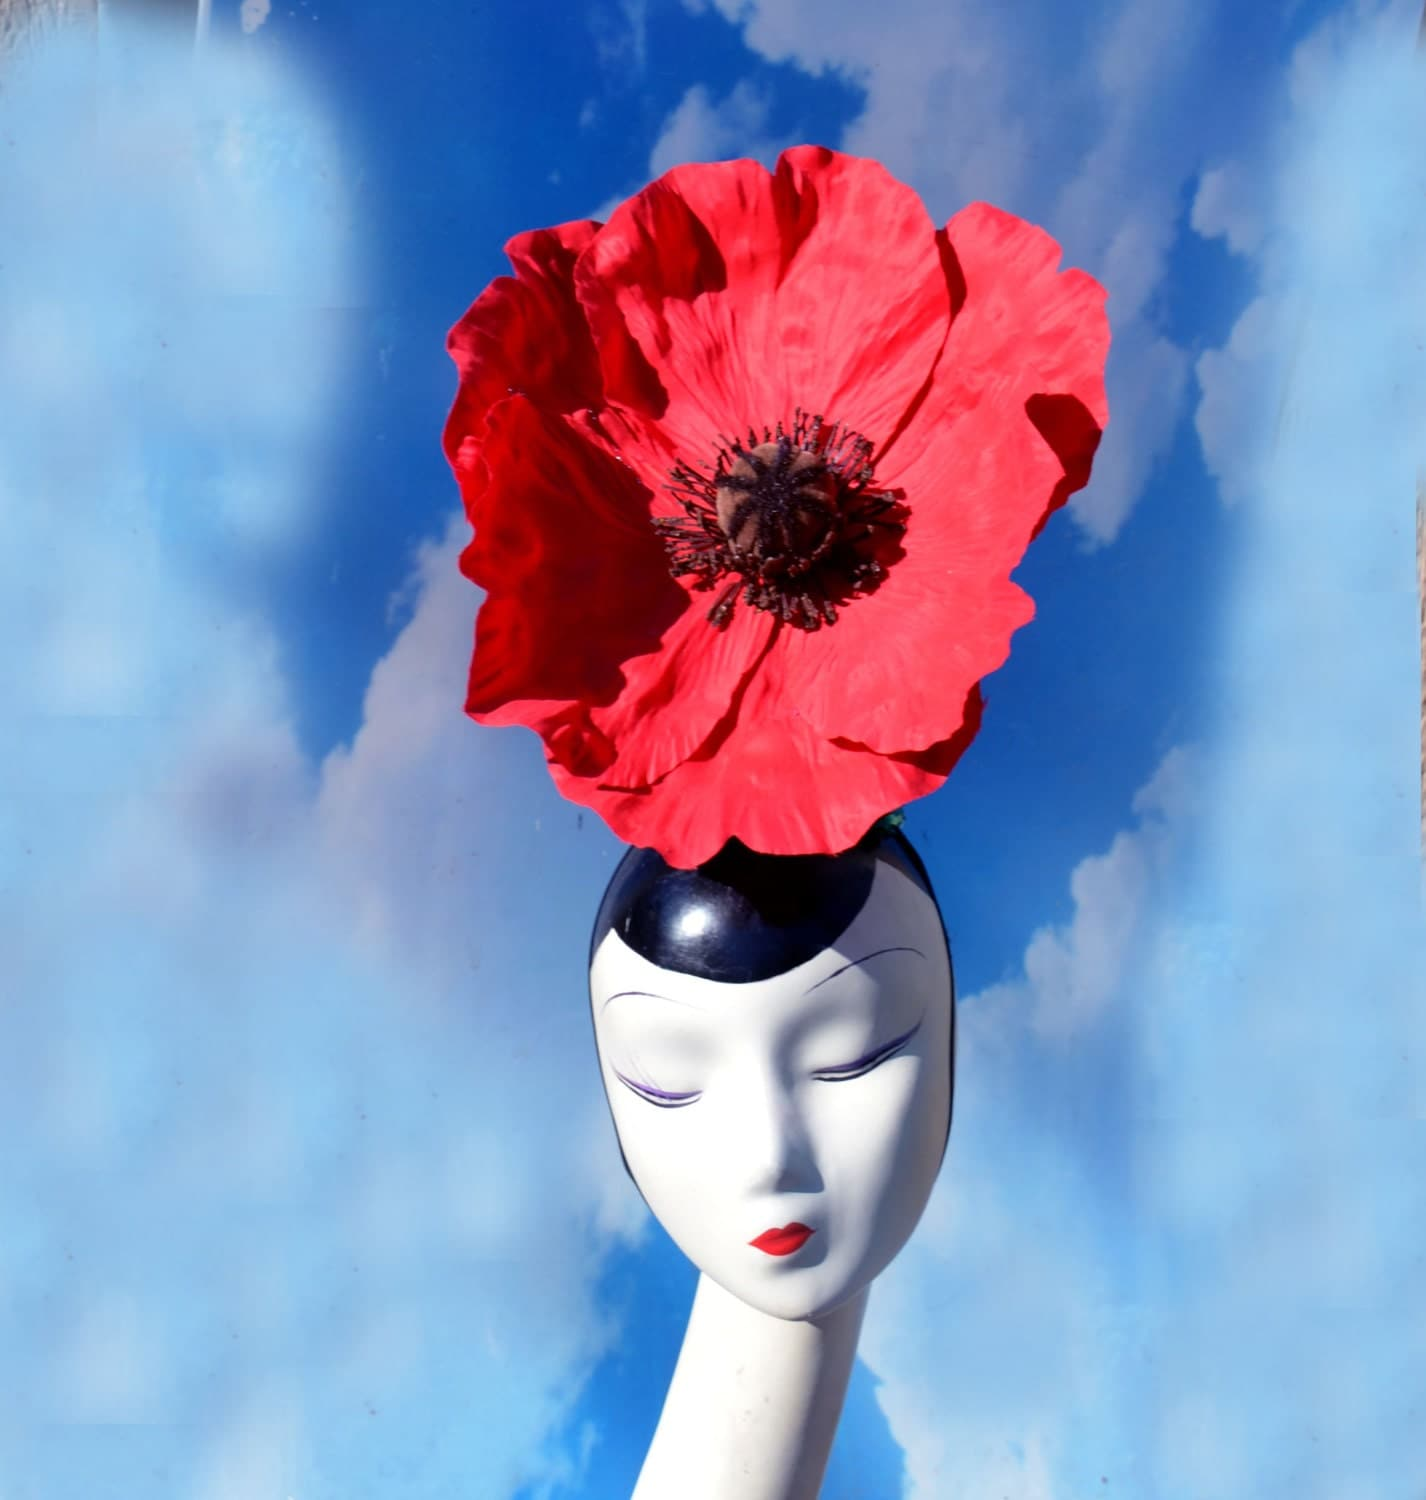 red poppy flower costume headpiece remembrance day military